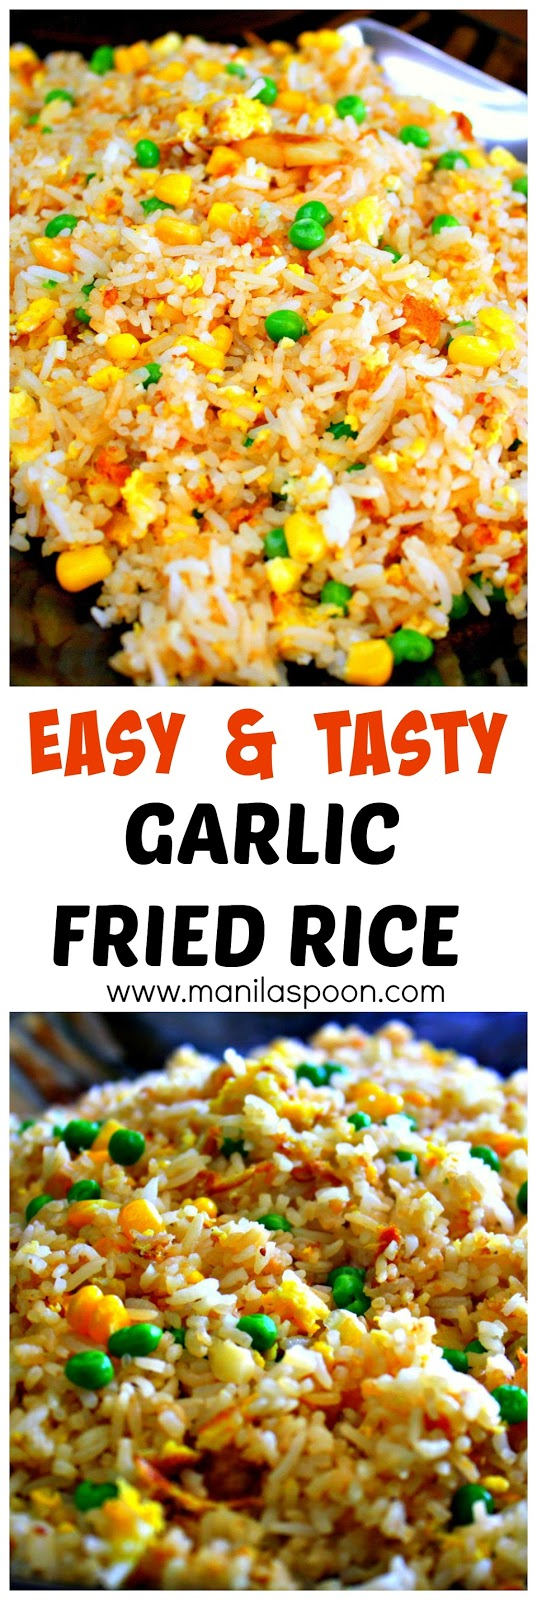 Easy garlic fried rice sinangag manila spoon no need to throw left over rice when you can make this easy tasty ccuart Image collections